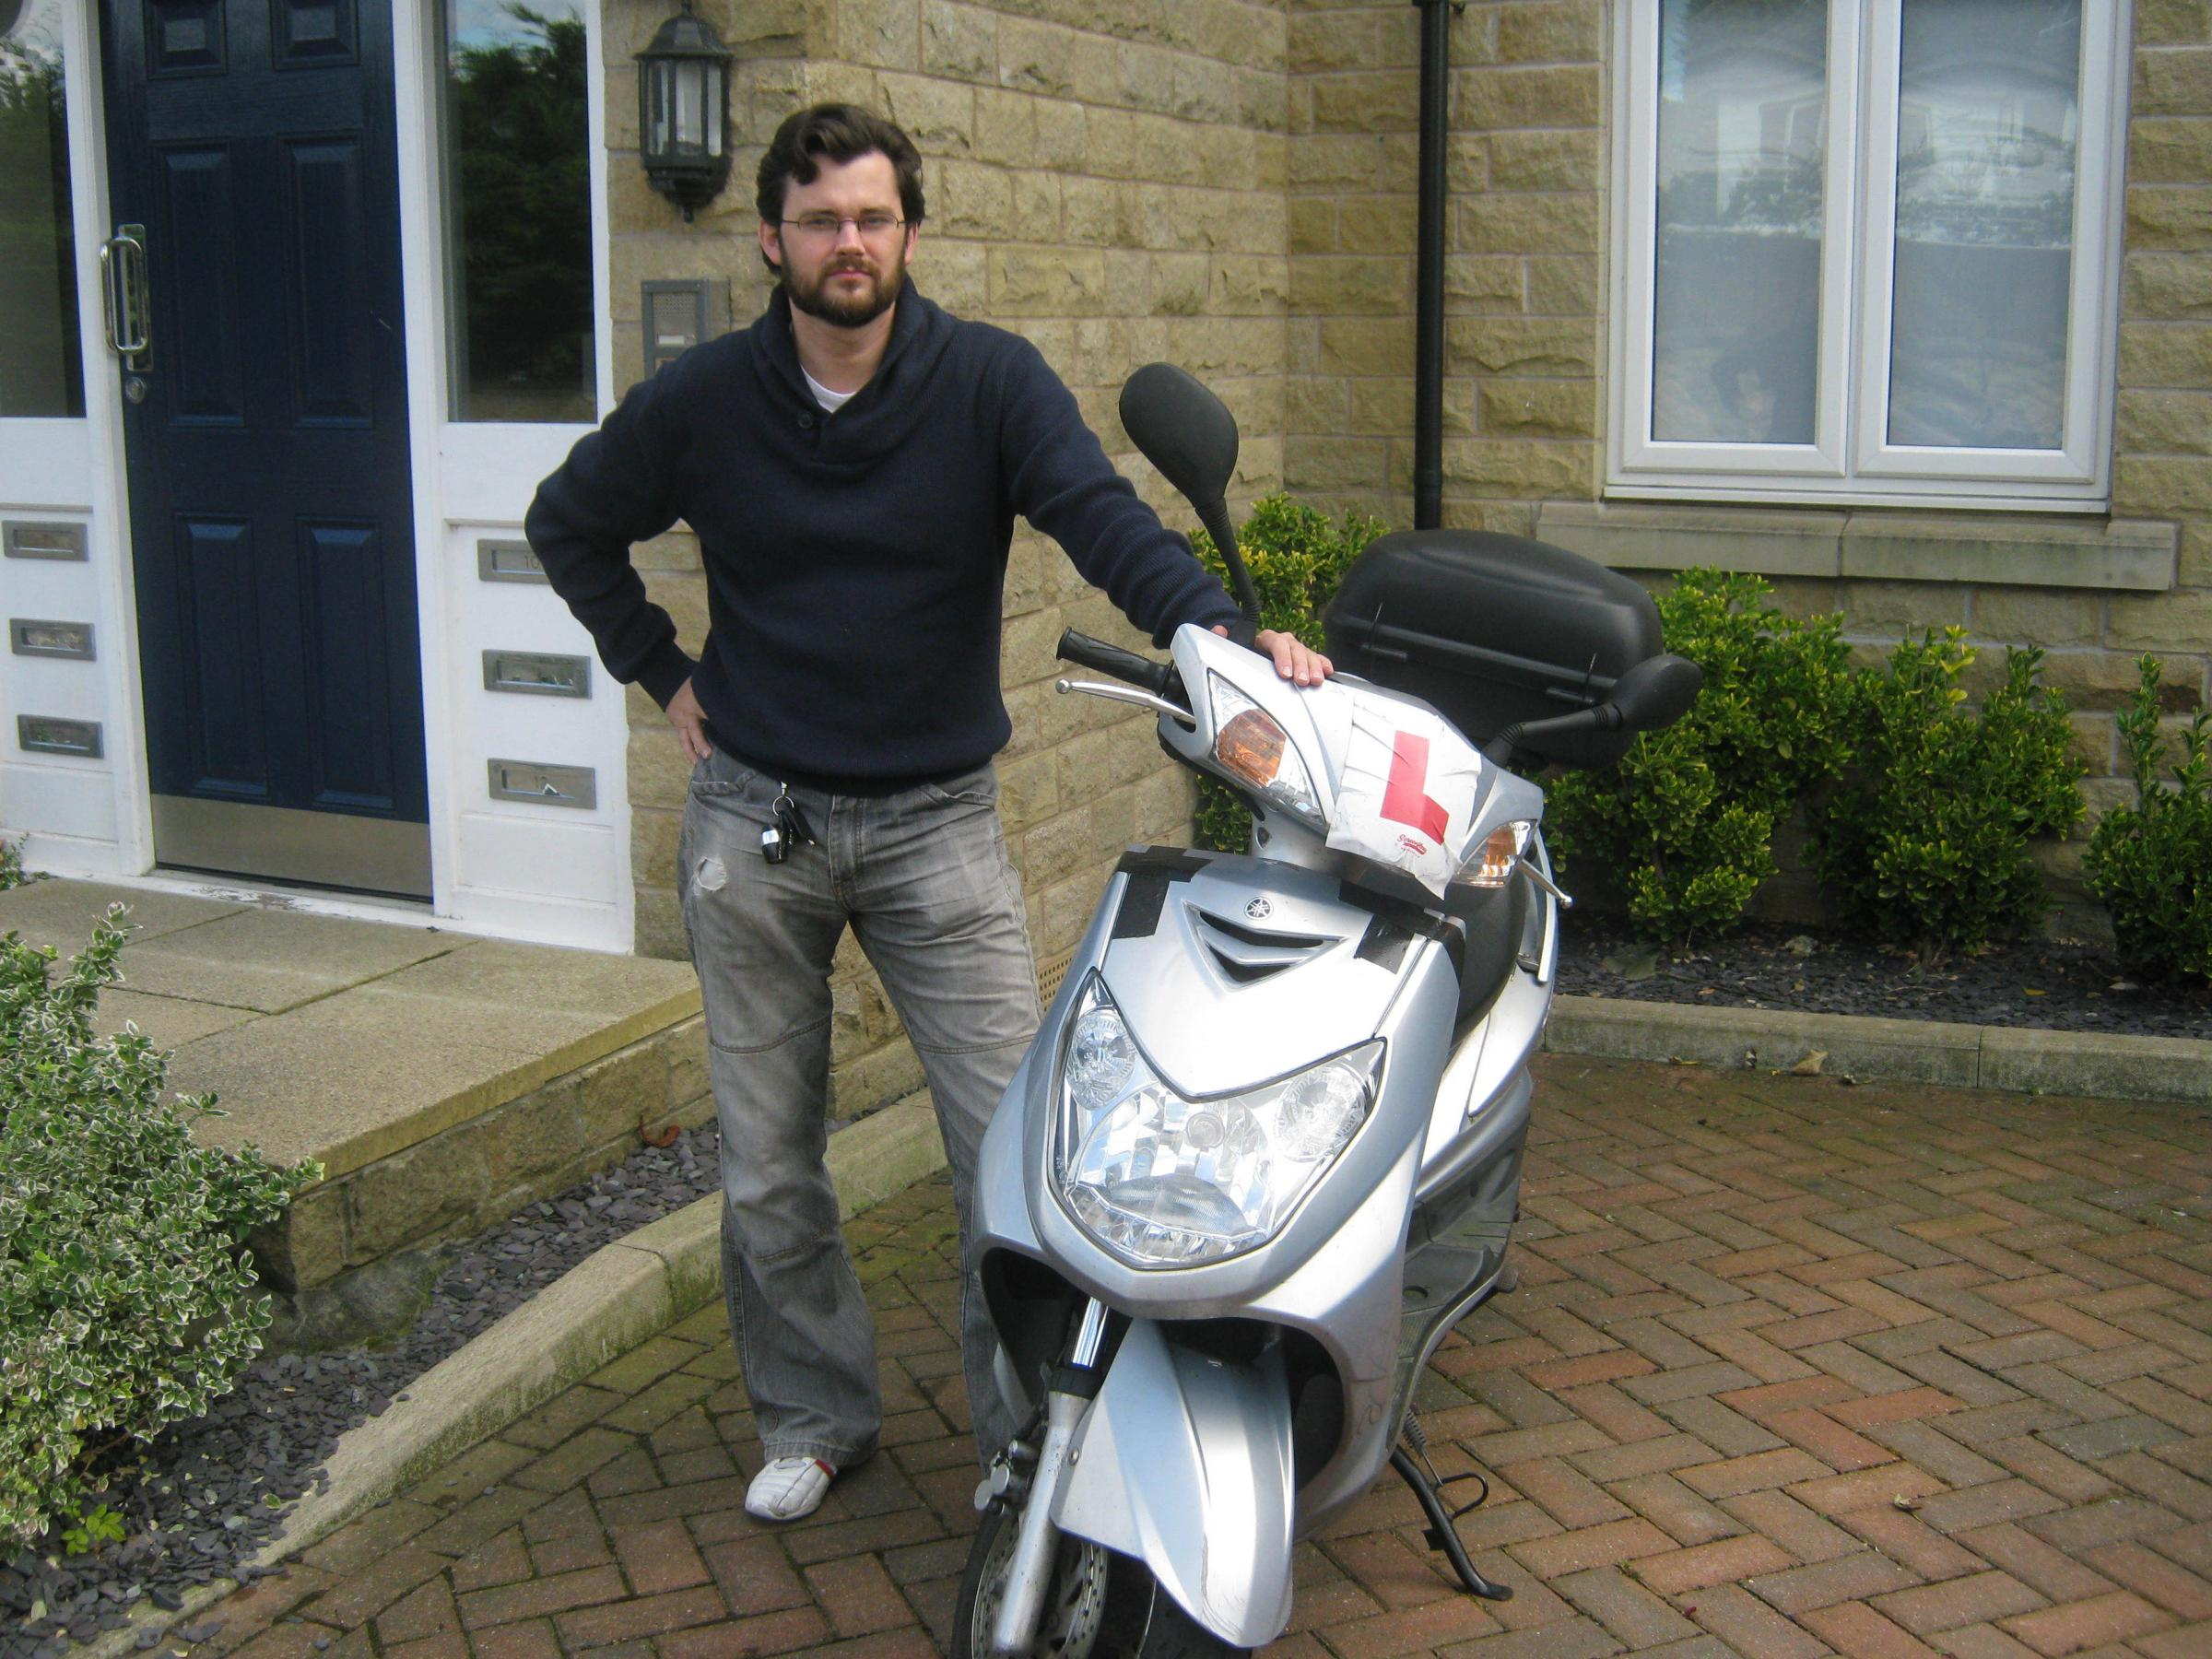 'I'm a victim twice' says owner of stolen scooter slapped with recovery fee